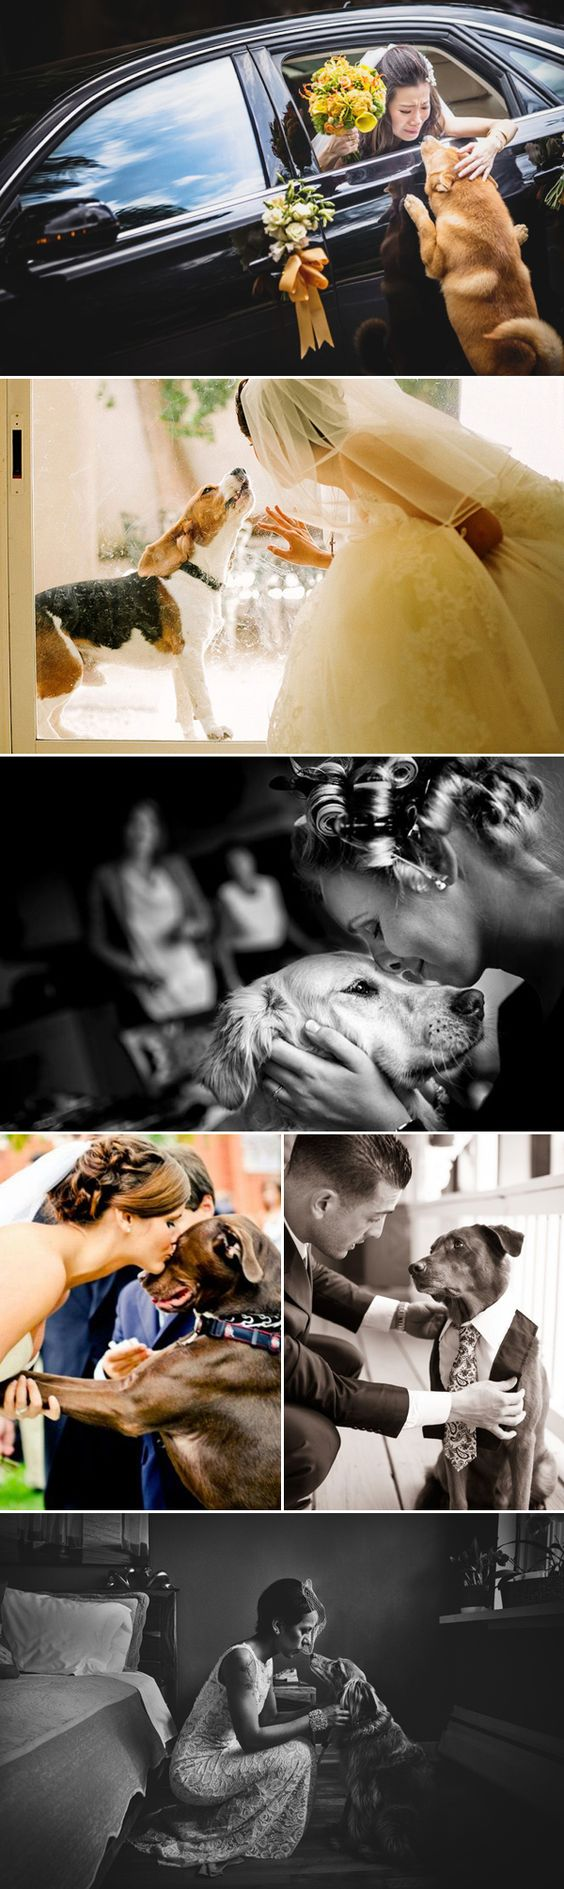 28 Precious Wedding Moments with Dogs and Their Promises!: